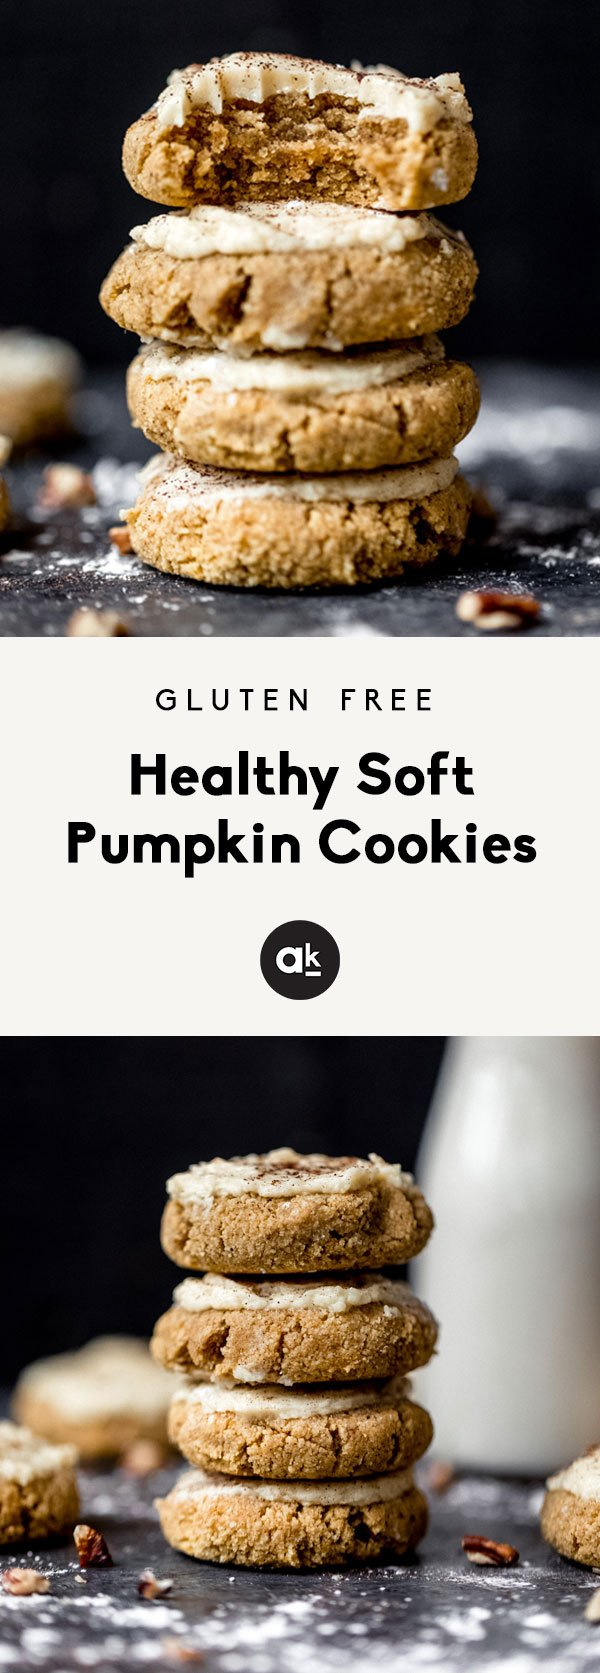 These healthy soft pumpkin cookies with an addicting salted maple frosting are absolutely delicious! These melt-in-your-mouth cookies are both gluten free and grain free and taste like a slice of your favorite pumpkin pie!